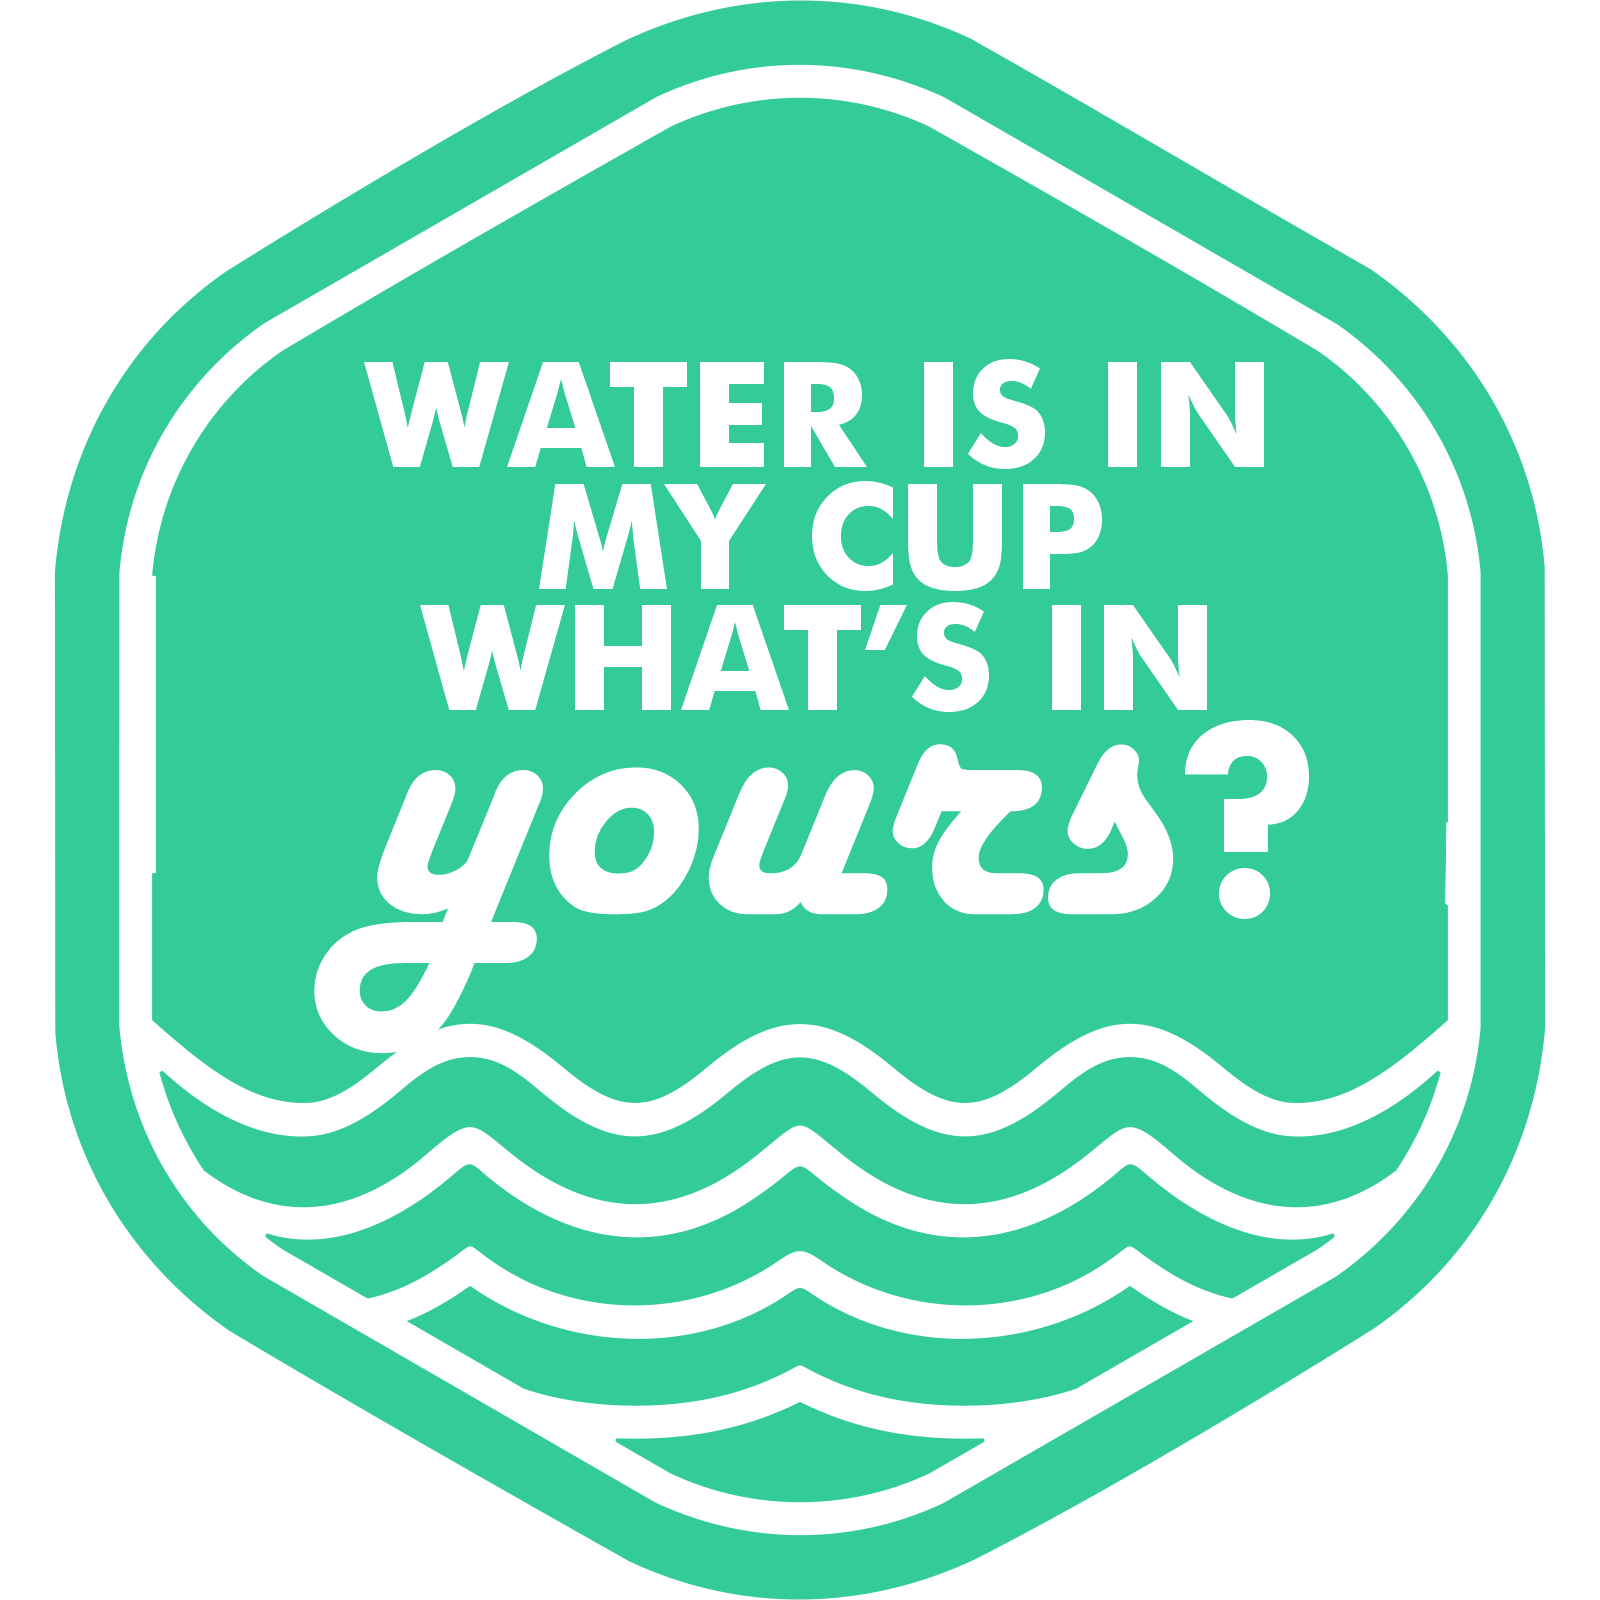 Water is in my cup, what's in yours?